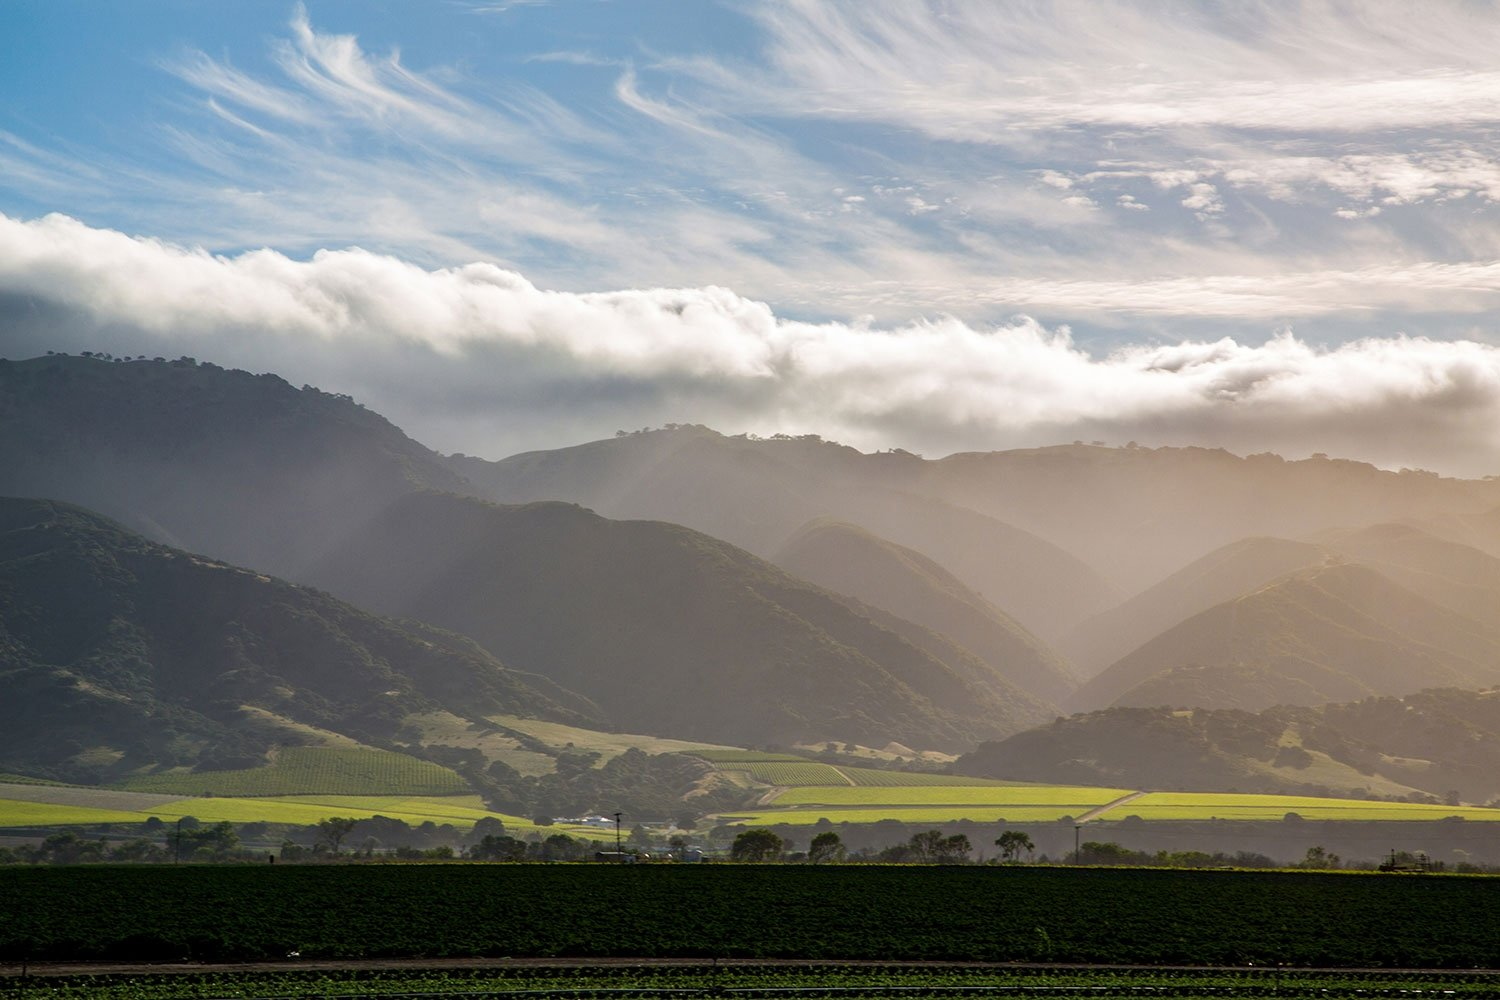 Late afternoon light over the vineyards beneath the Santa Lucia Highlands.